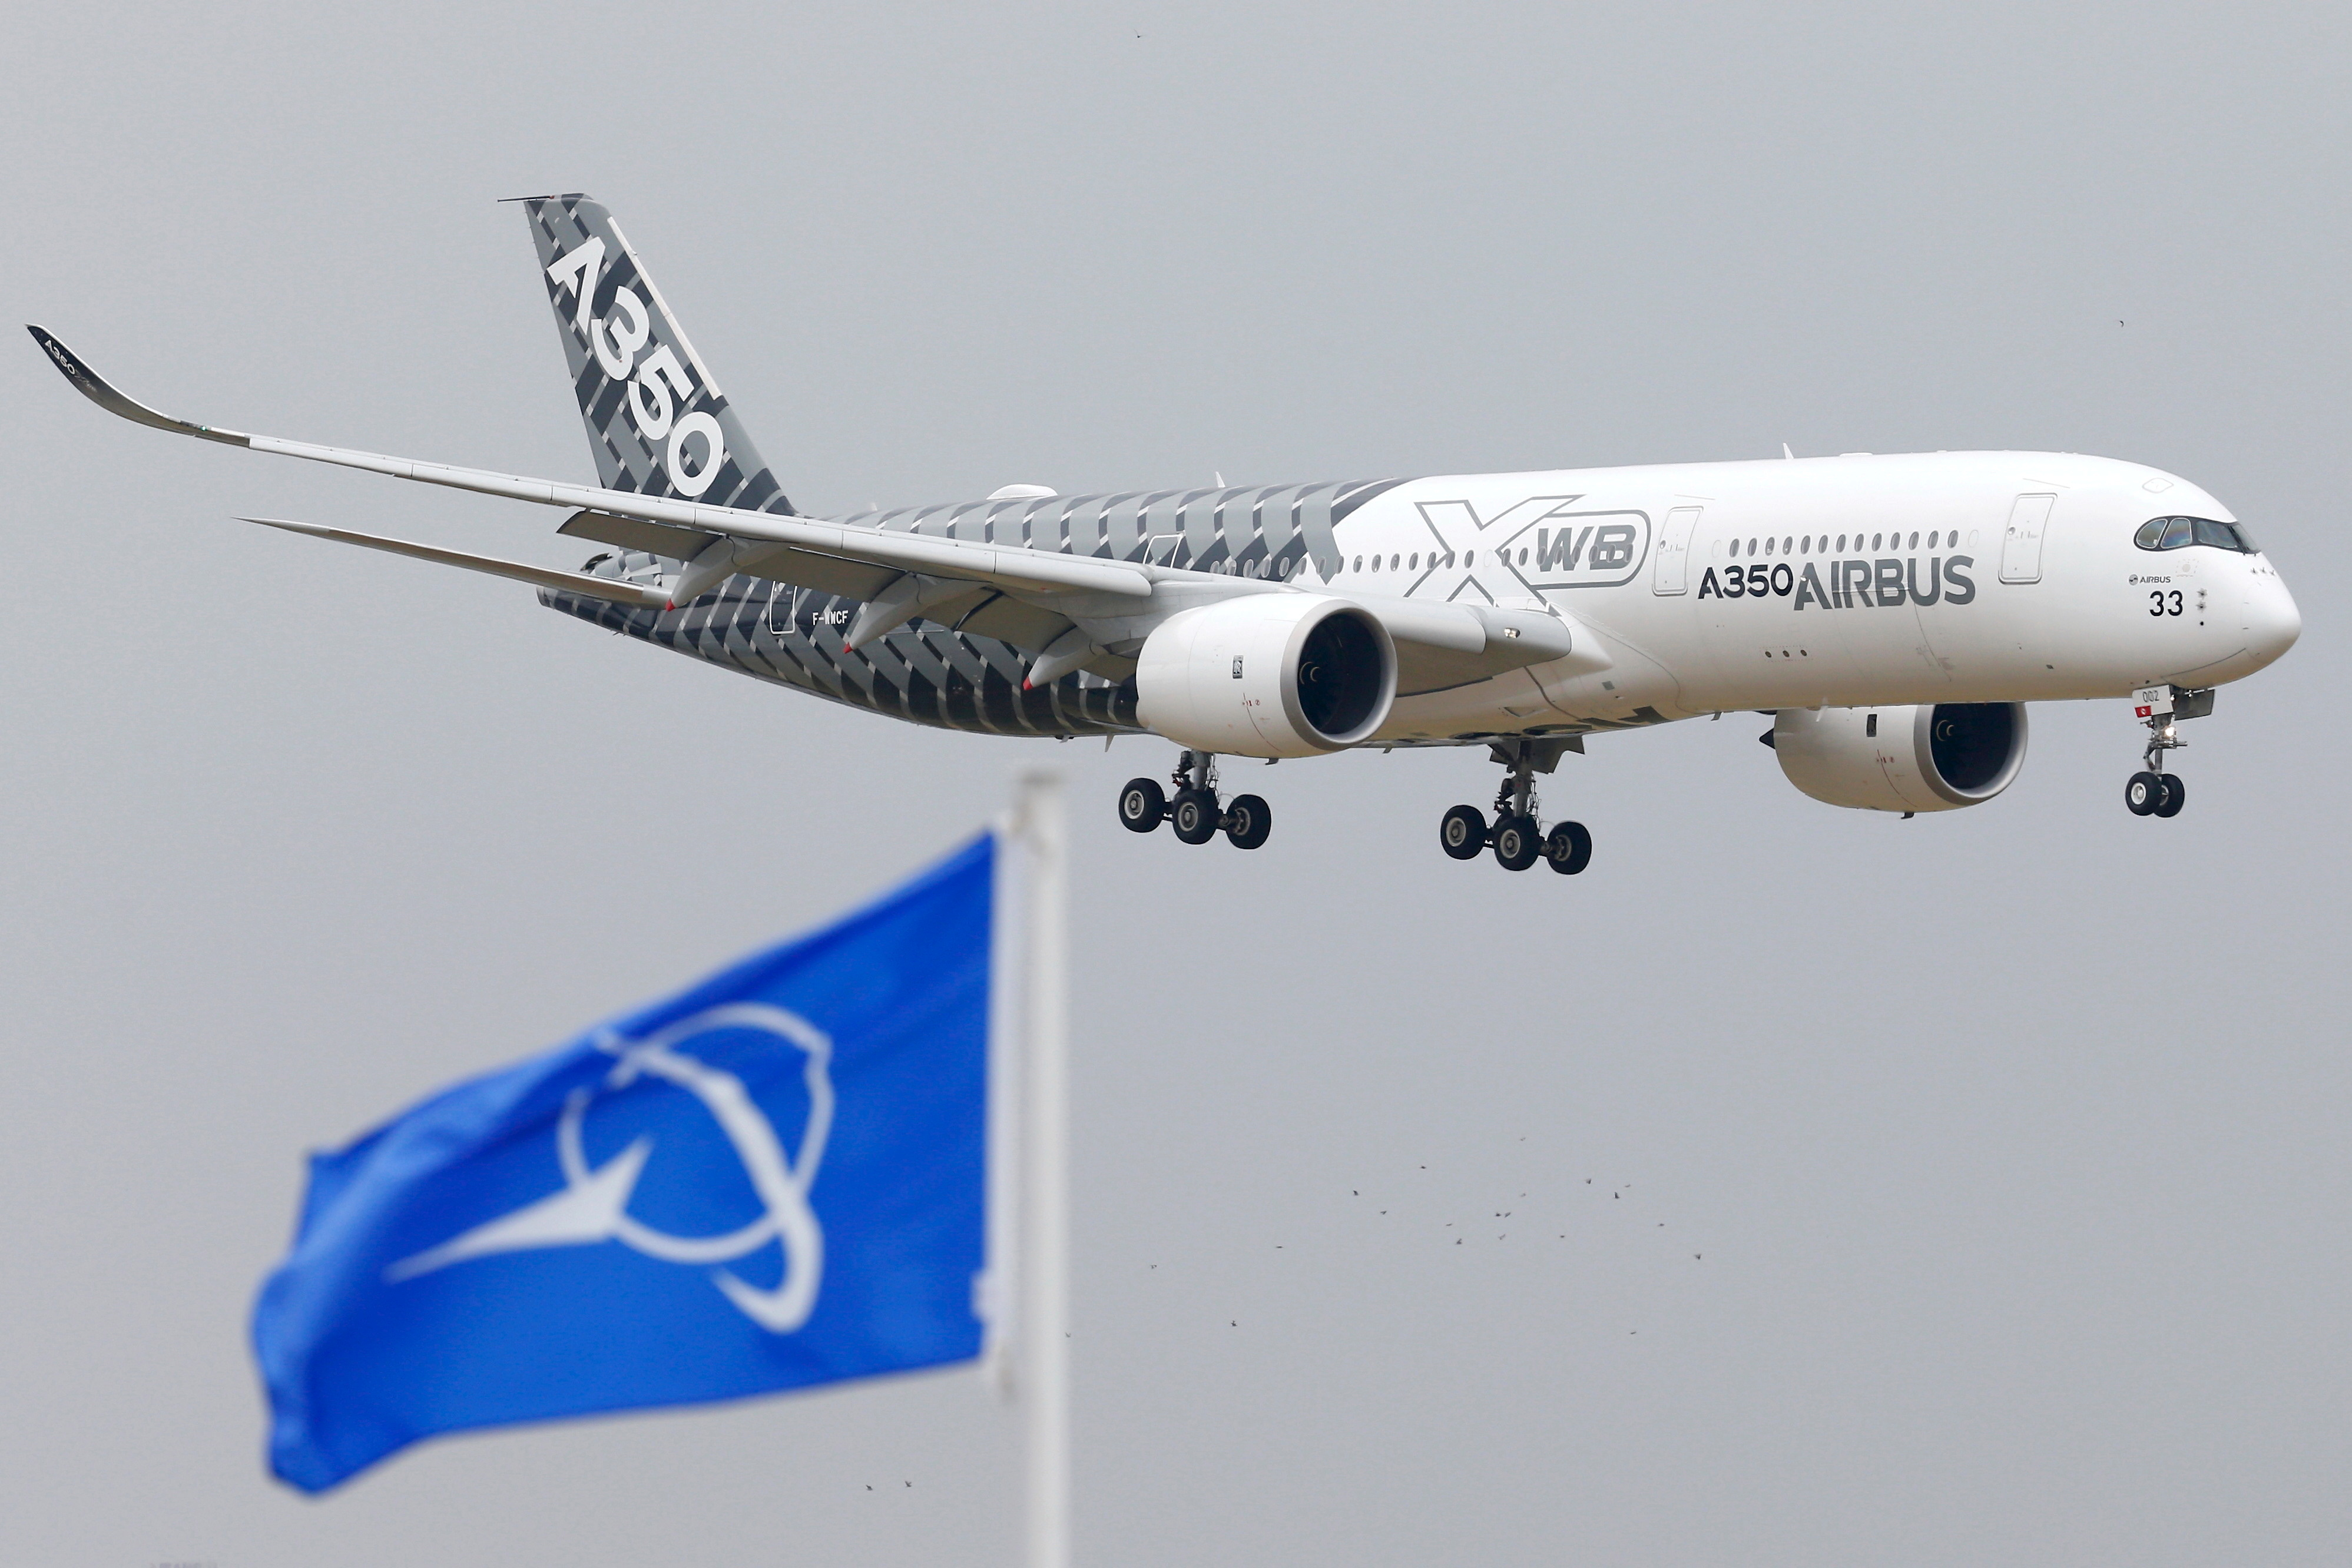 An Airbus A350 jetliner flies over Boeing flags as it lands after a flying display during the 51st Paris Air Show at Le Bourget airport near Paris, June 15, 2015. REUTERS/Pascal Rossignol